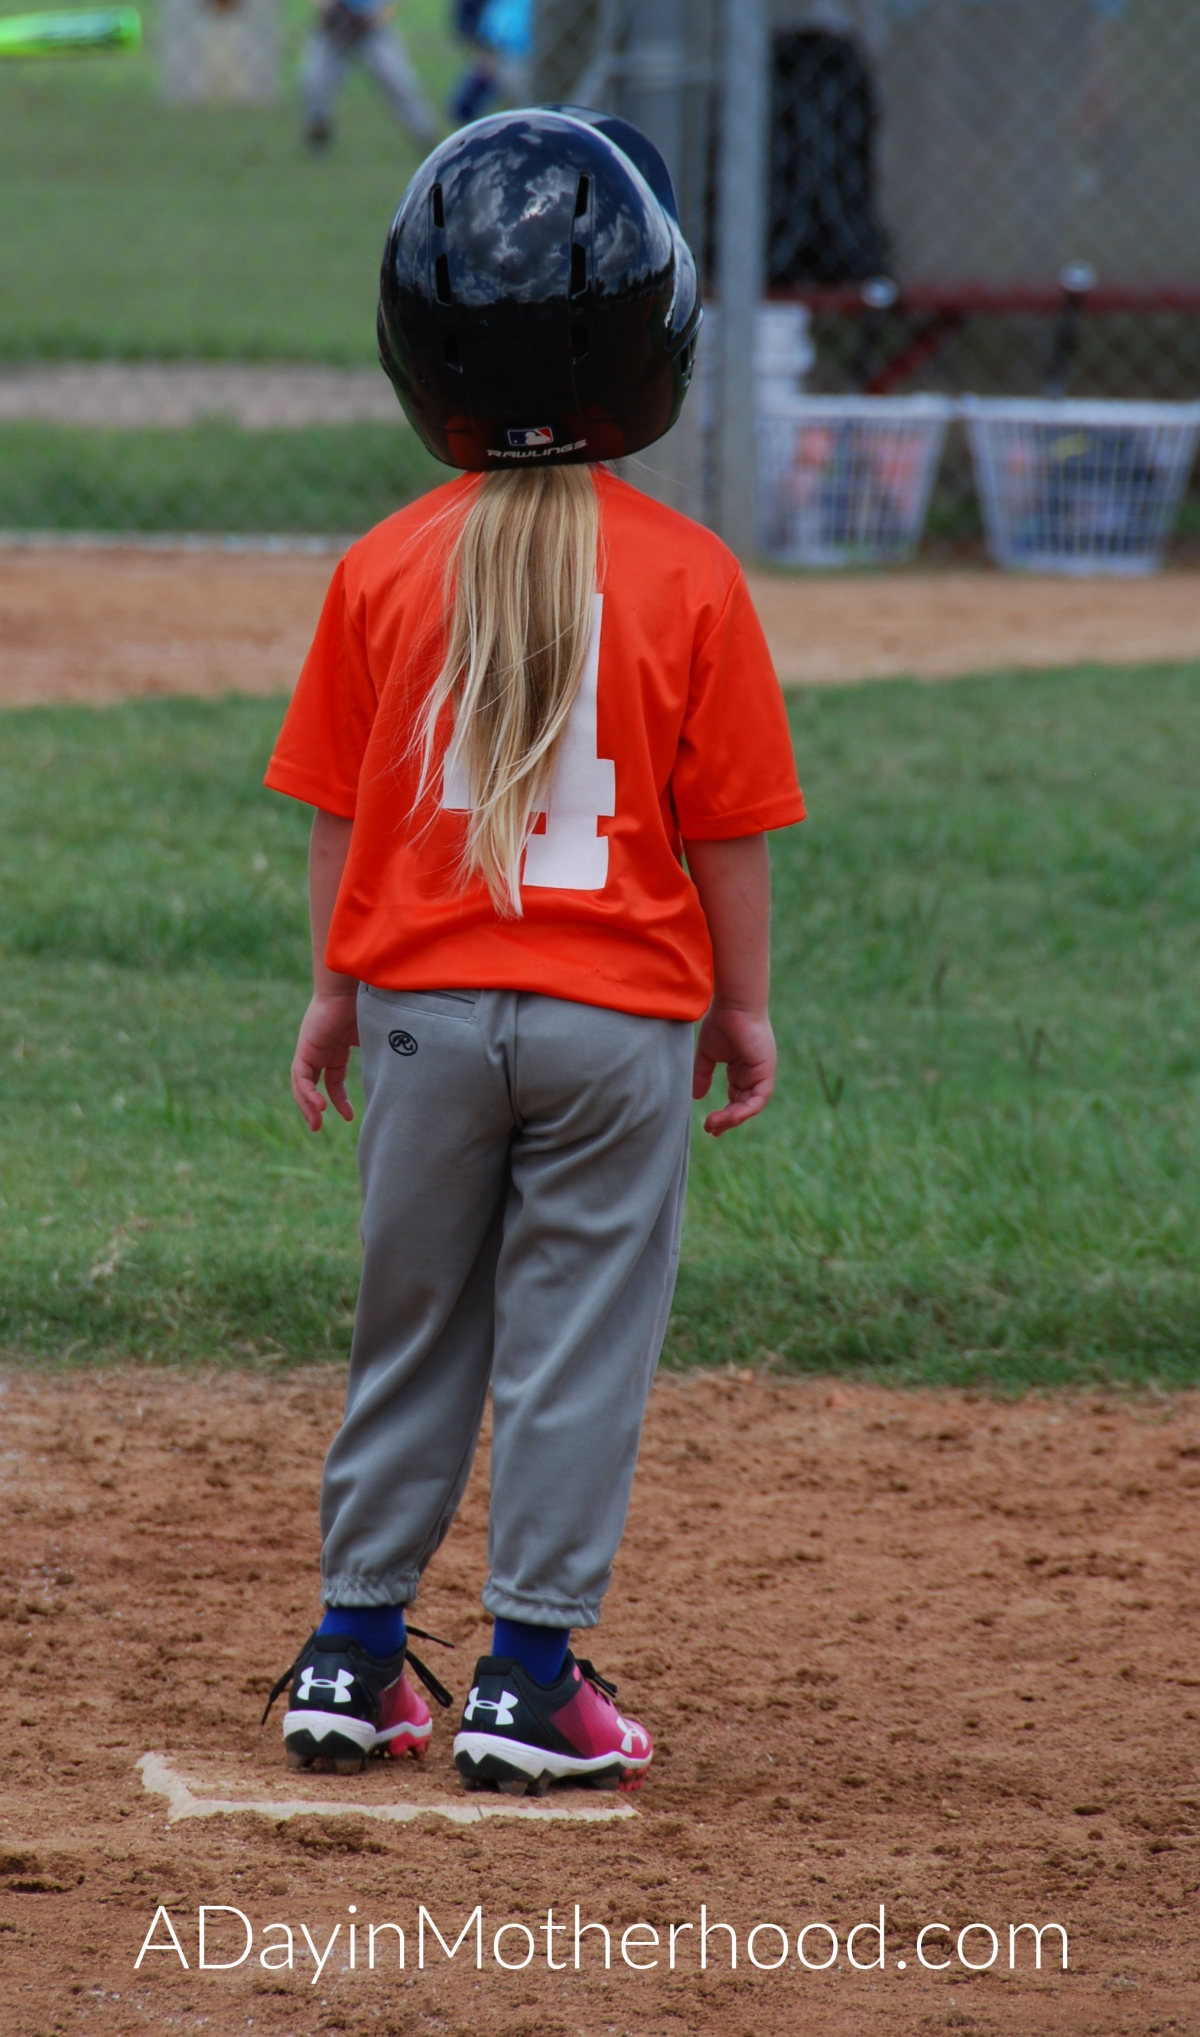 Childhood Anxiety and the student athlete can start at an early age